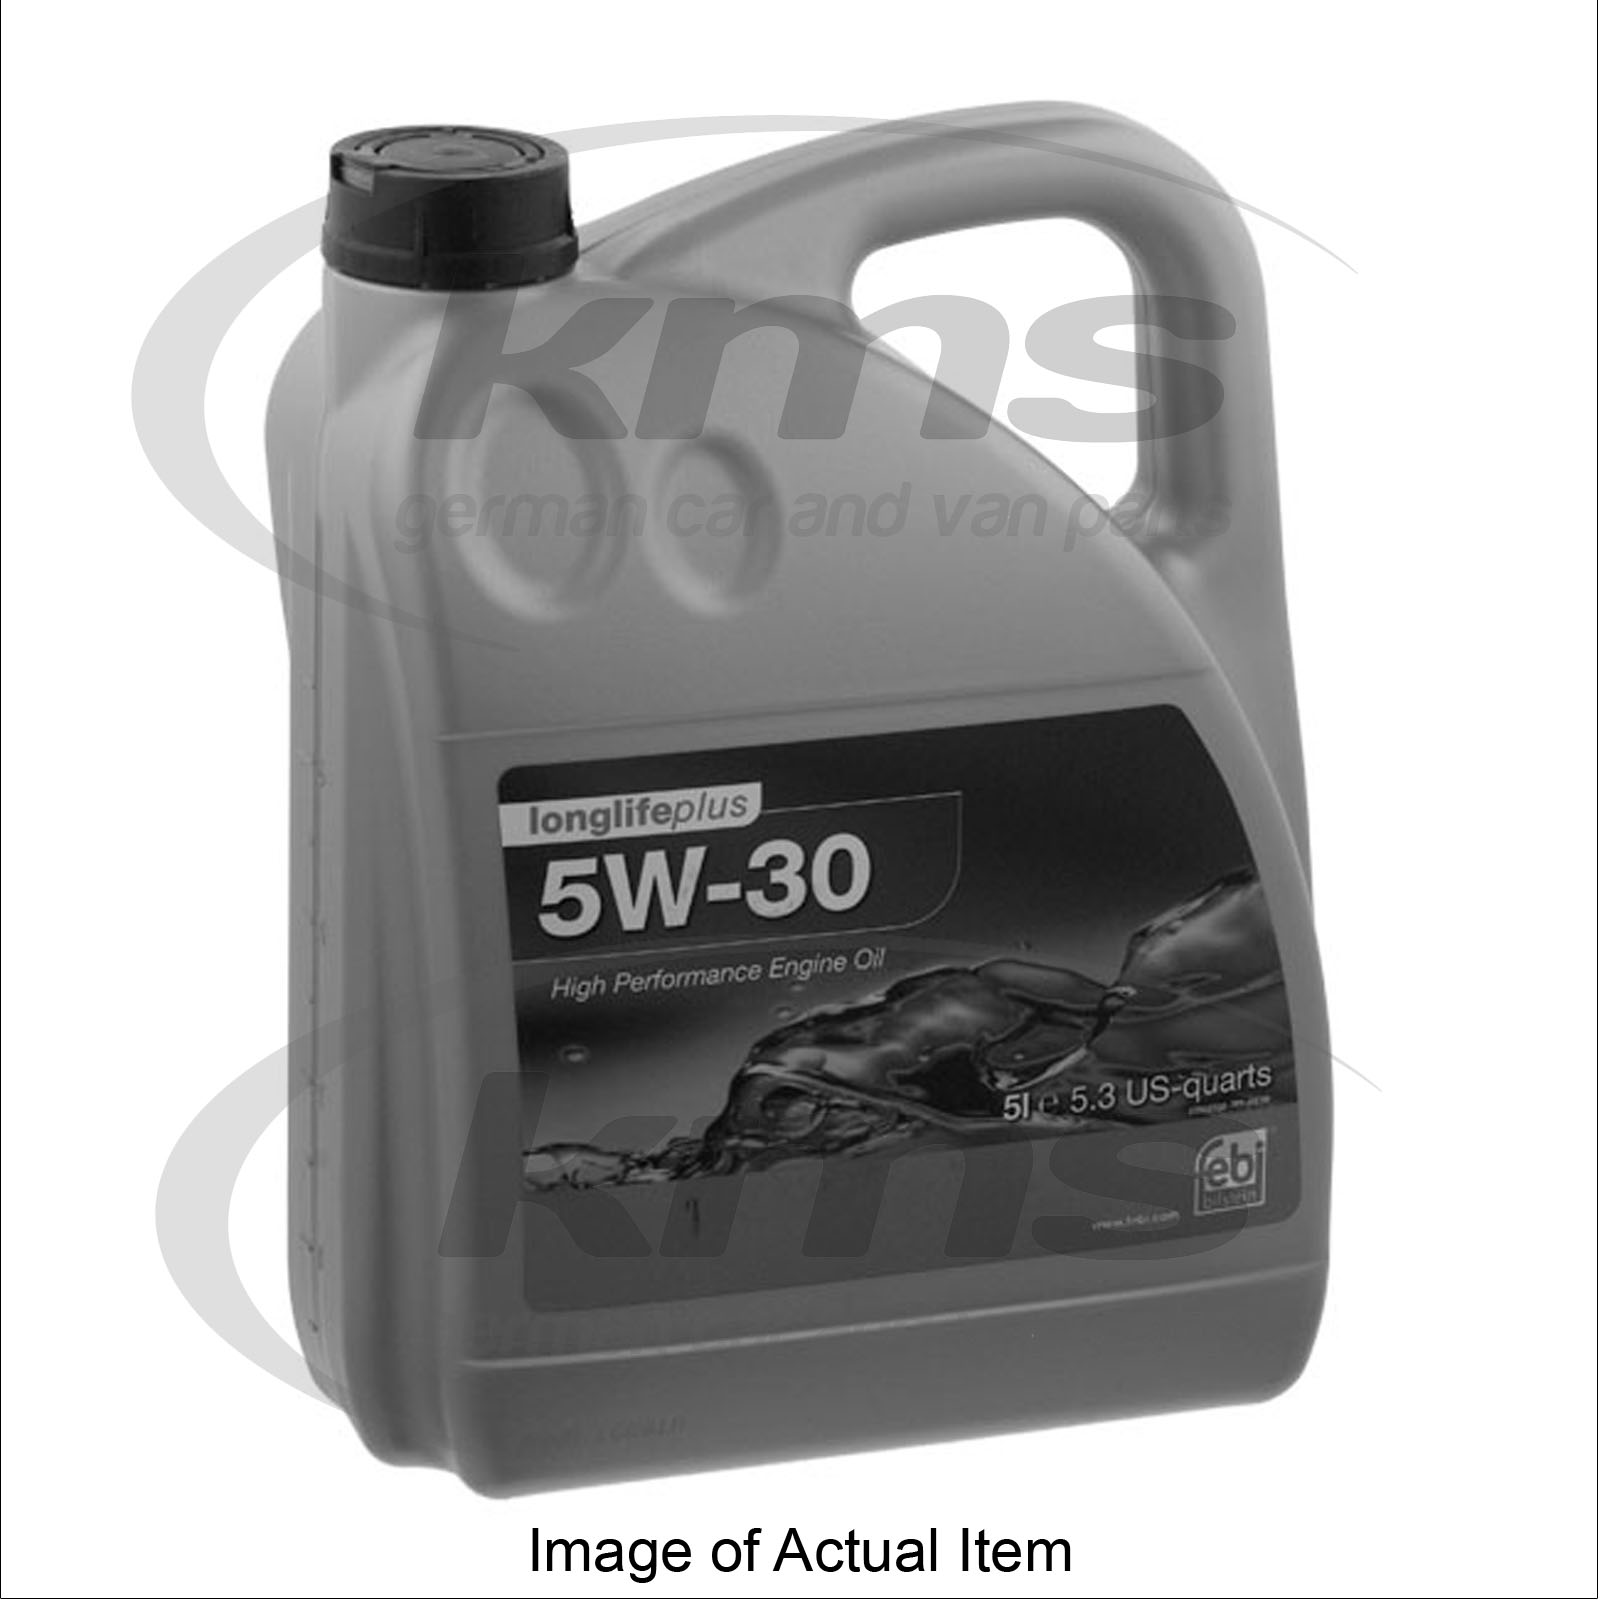 Engine Oil 5w 30 Ll 5 Ltr Audi A5 Coupe Tdi 8t 2007 2 7l 187 Bhp Top German Ebay: audi a5 motor oil